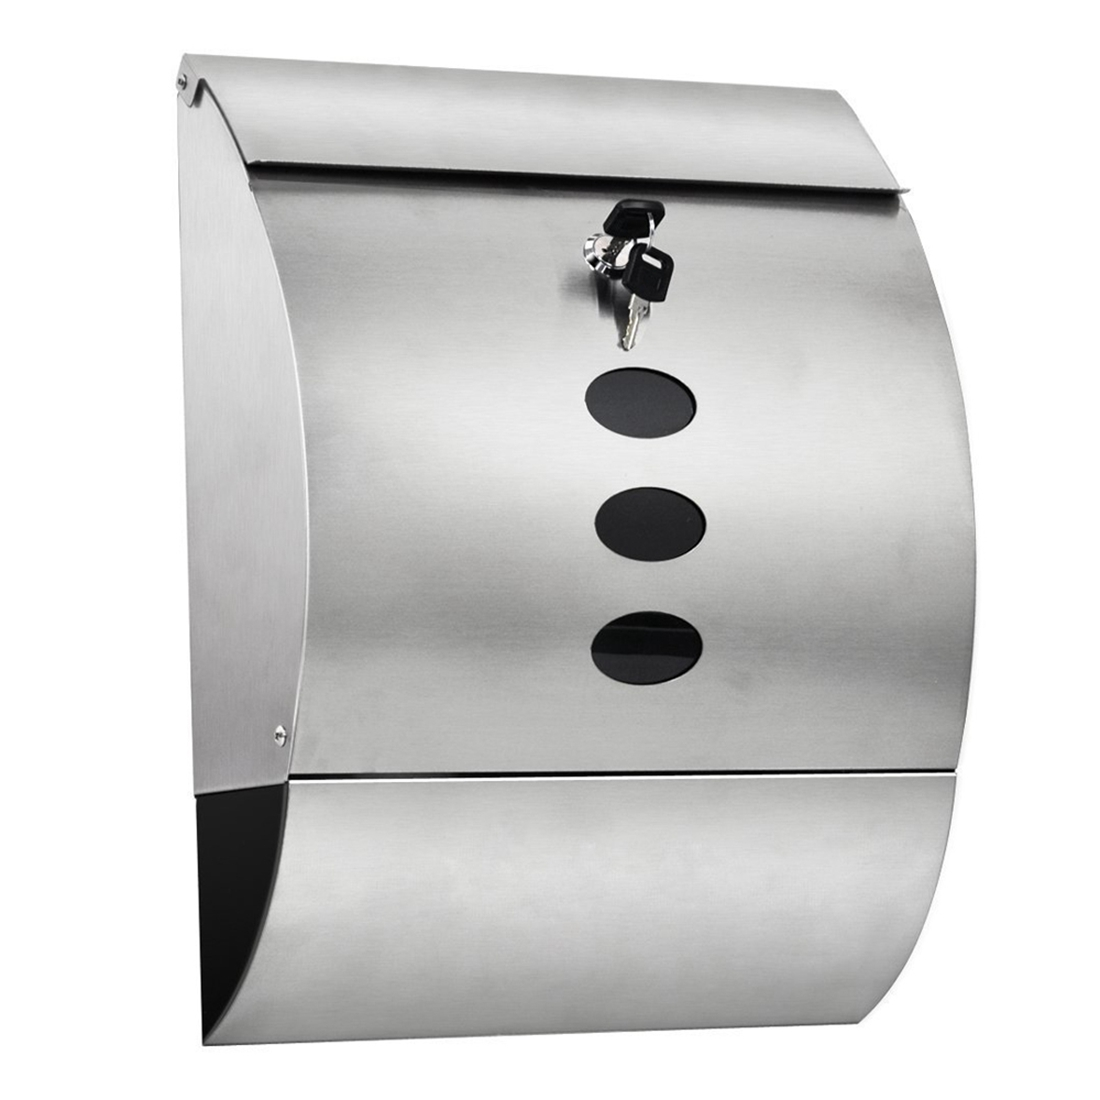 SZS Hot Waterproof Stainless Steel Lockable Mailbox & Newspaper Holder Outdoor Mail/Post/Letter Box Silver